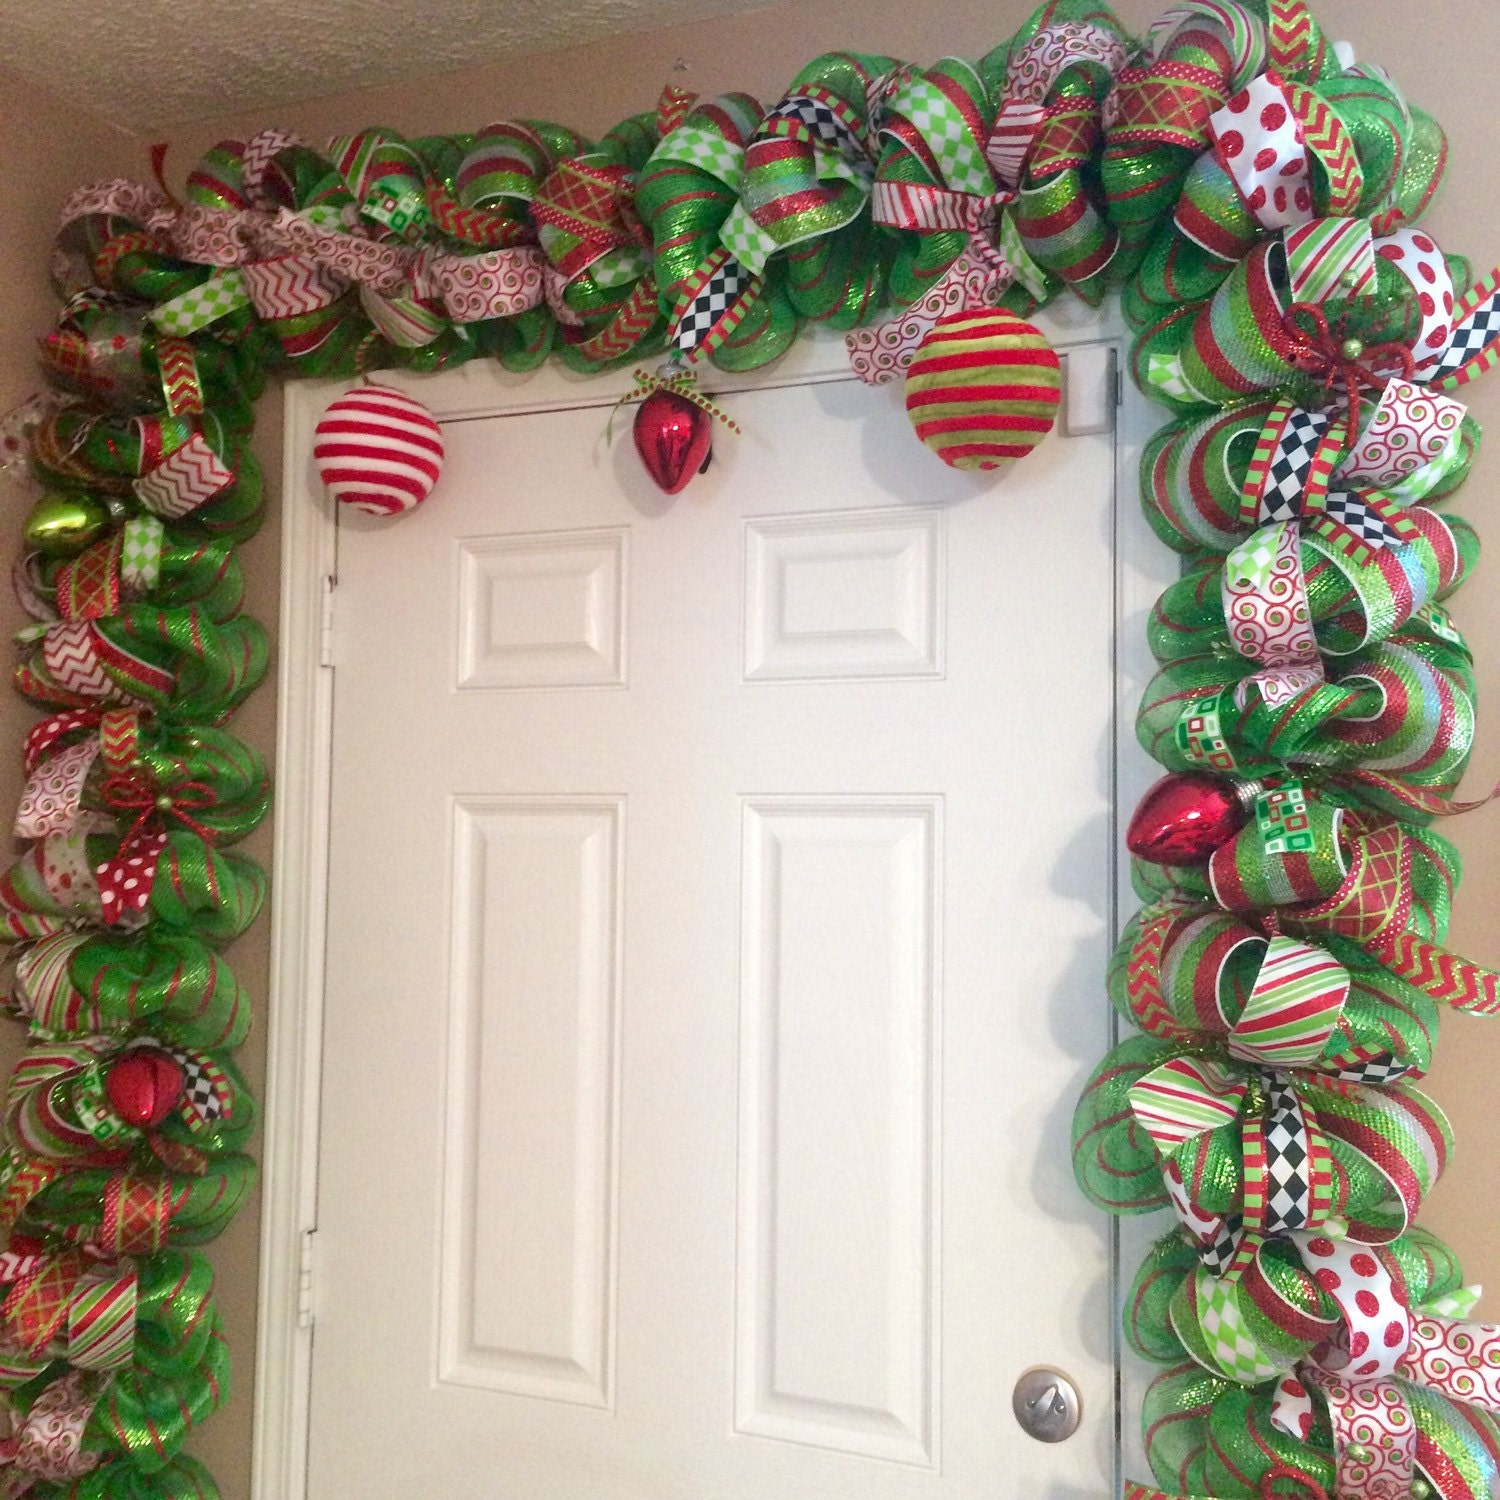 Garland door binmer christmas balls wreath door wall for Christmas swags and garlands to make